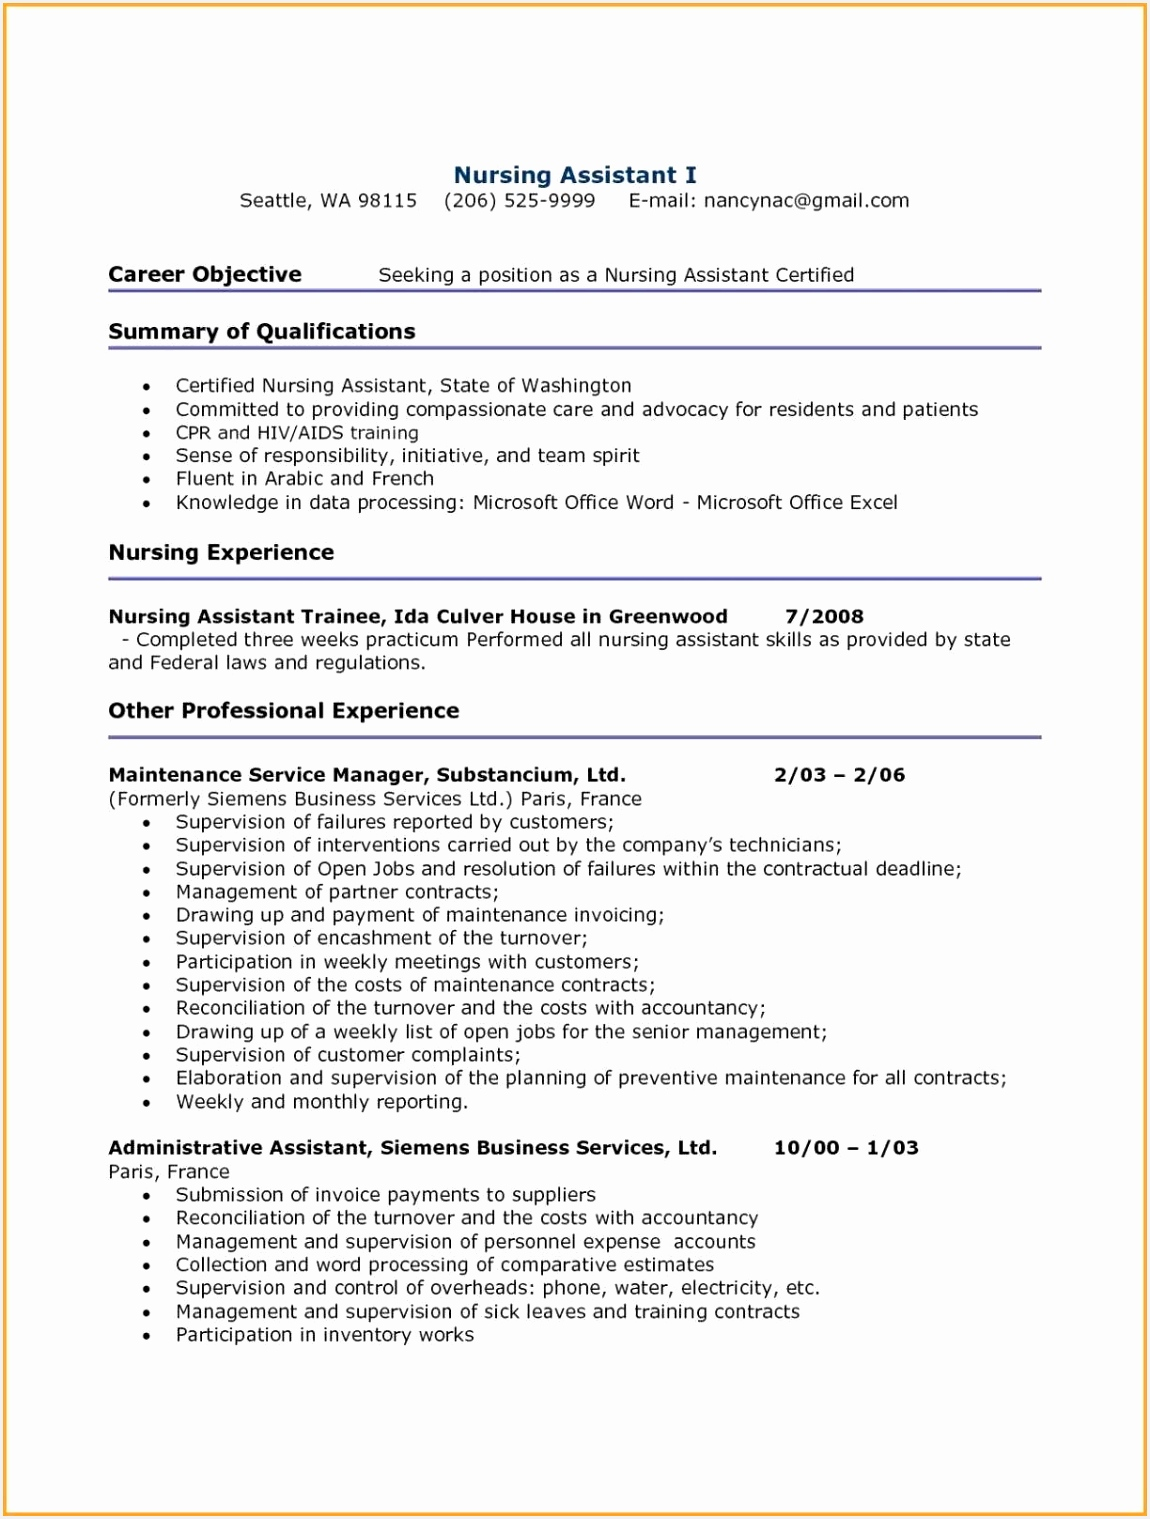 Microsoft Trainer Sample Resume Rduqf Awesome Cover Letter Email format Lovely Email Cover Letters New Resume Of Microsoft Trainer Sample Resume Fsadg Beautiful Retail Resume Template Microsoft Word Fresh Retail Resume Sample